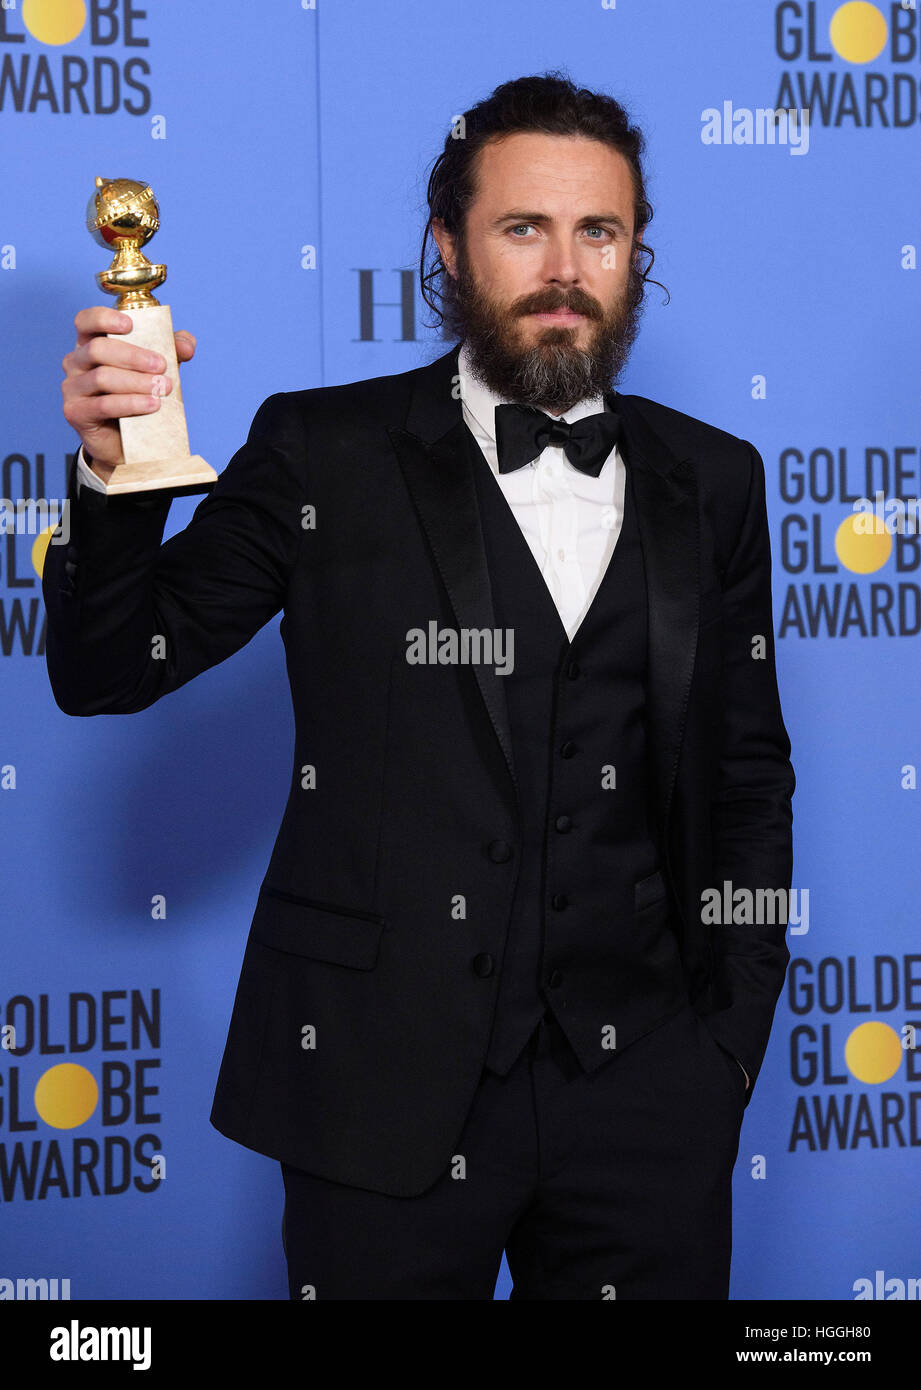 Beverly Hills, CA, USA. 8 janvier, 2017. Casey Affleck. 74e Golden Globes Awards annuel tenu à l'hôtel Photo Stock